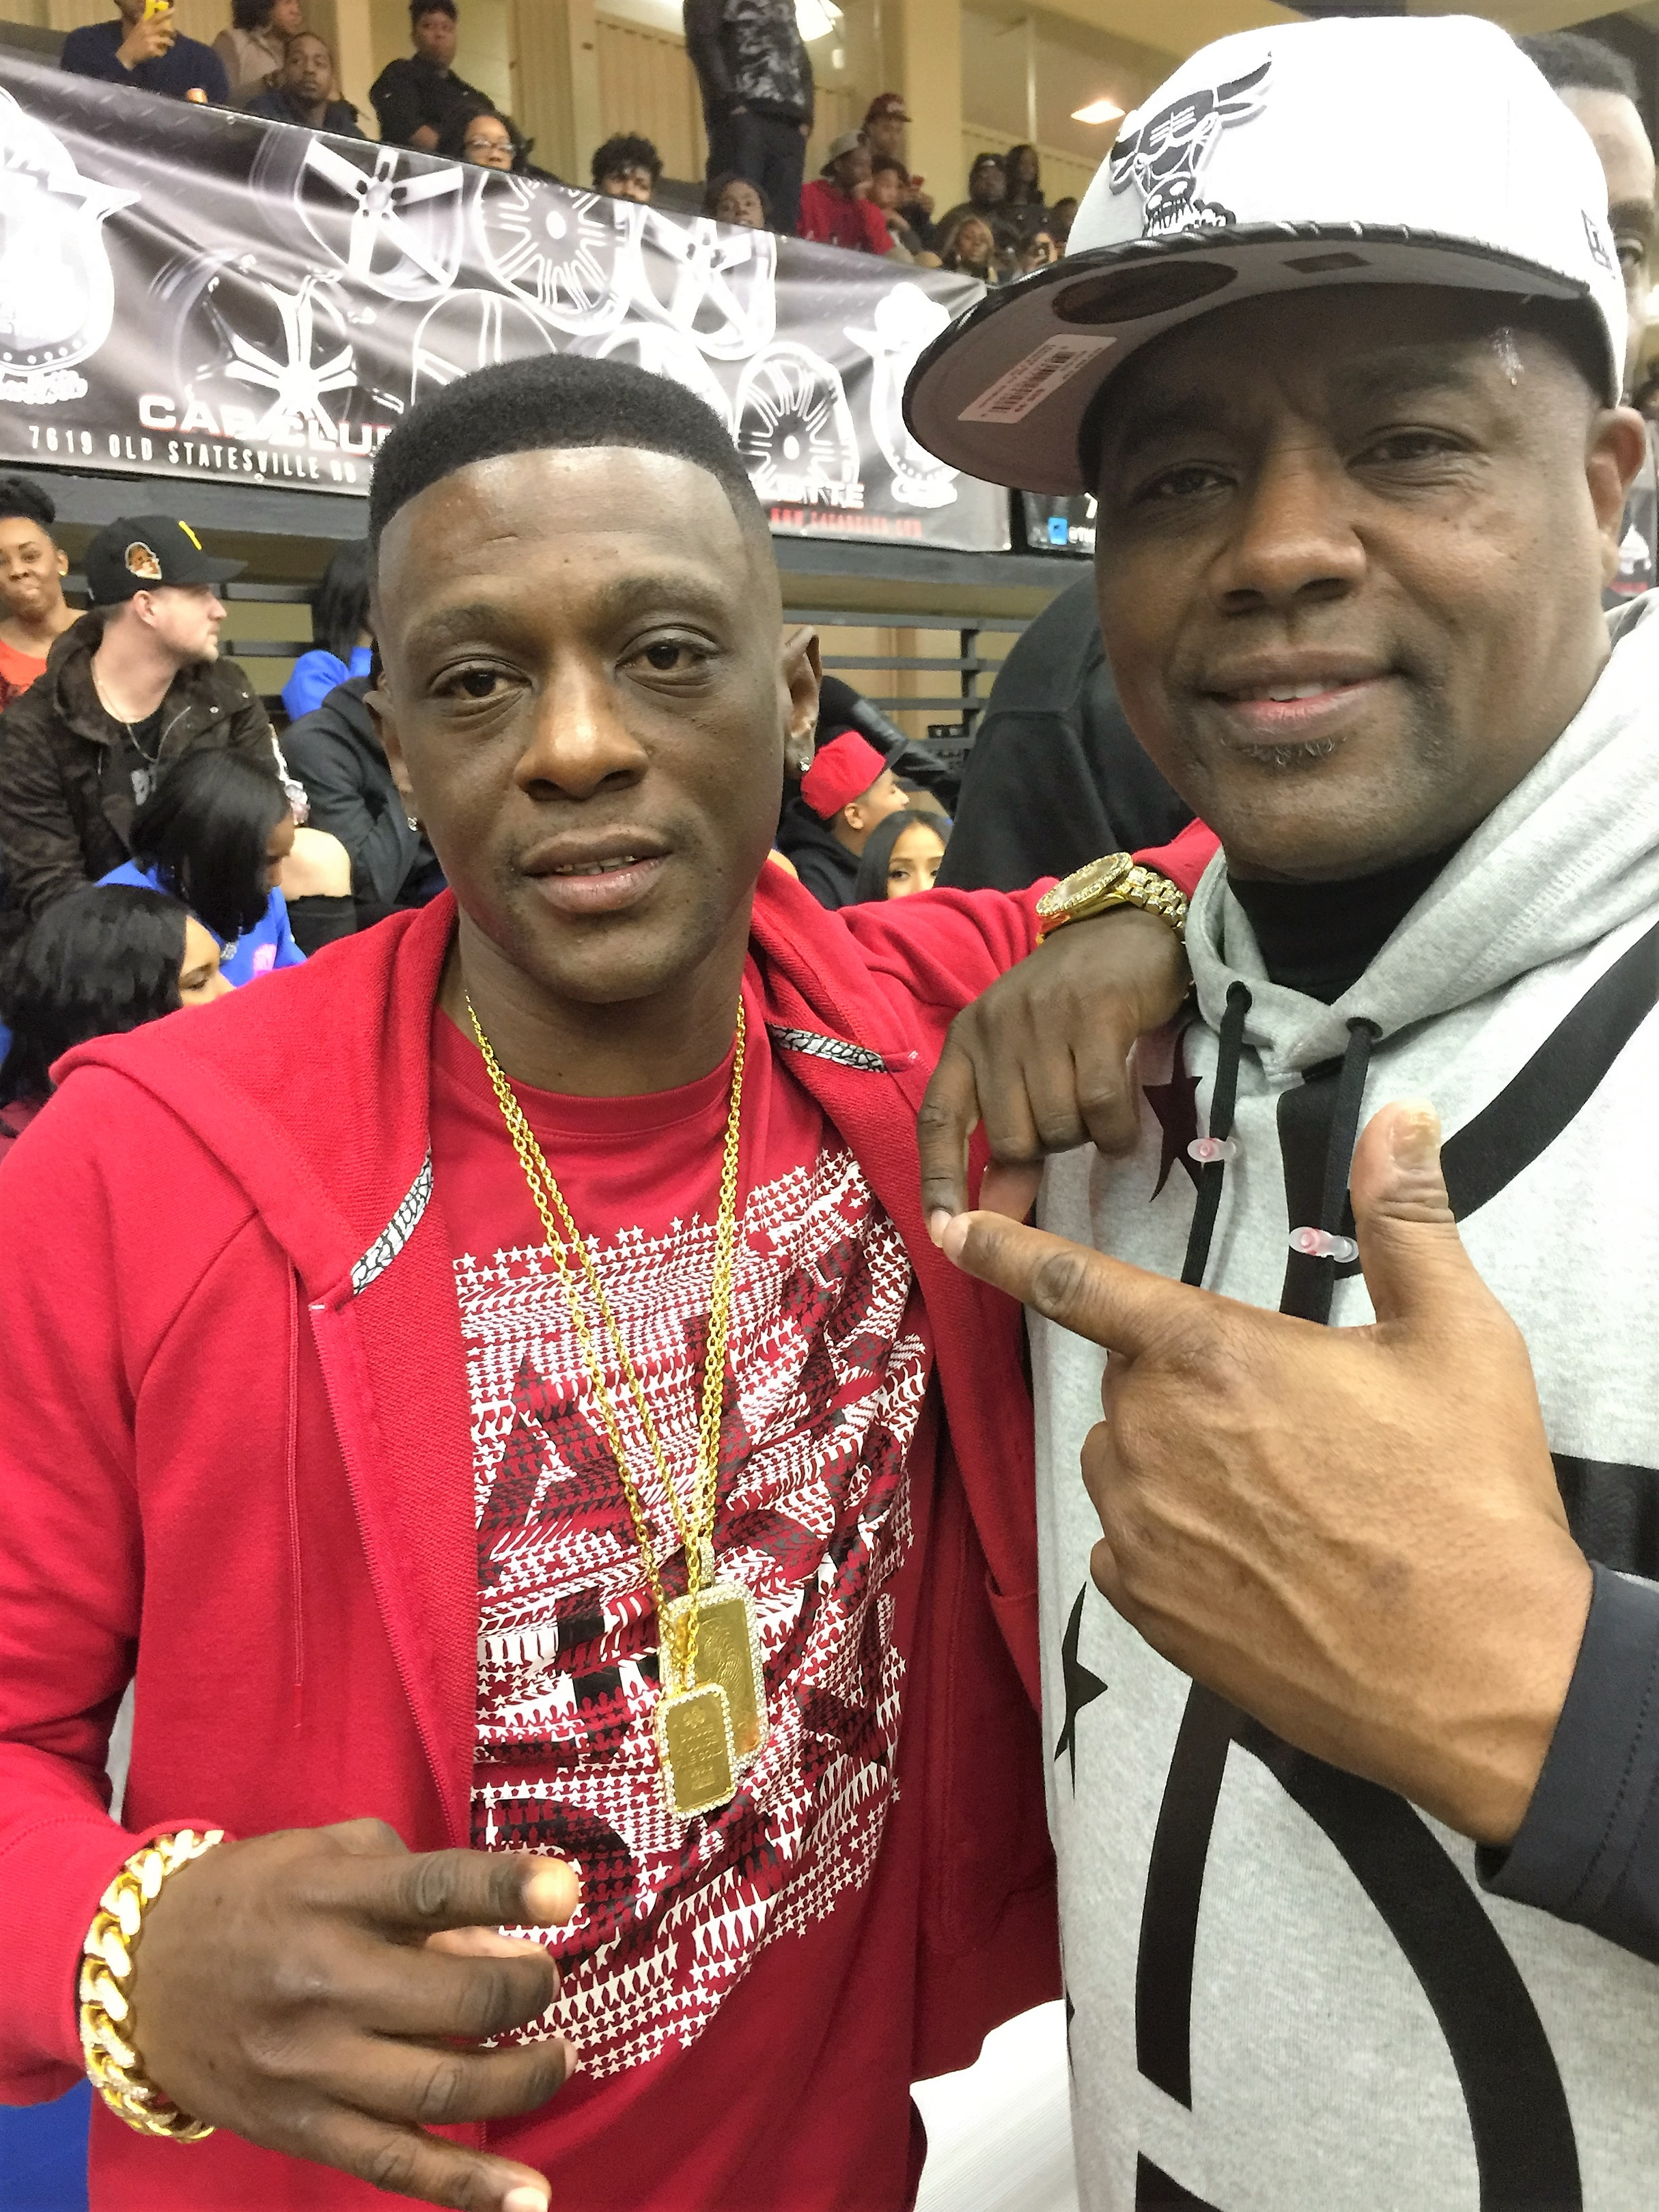 BOOSIE + MIKE B